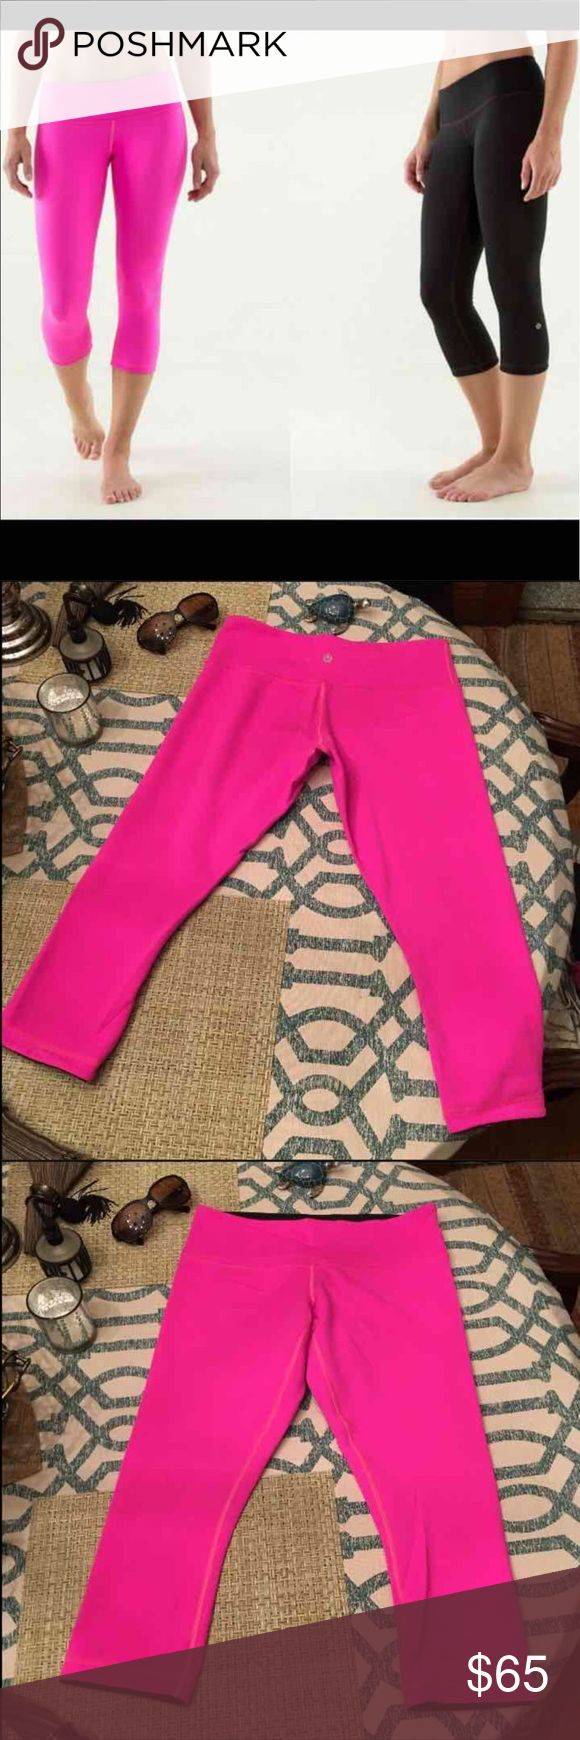 Lululemon Pink & Black Crop Leggings Size 6 like new, reversible. No piling or flaws. Happy to bundle items for a great discount. lululemon athletica Pants Leggings